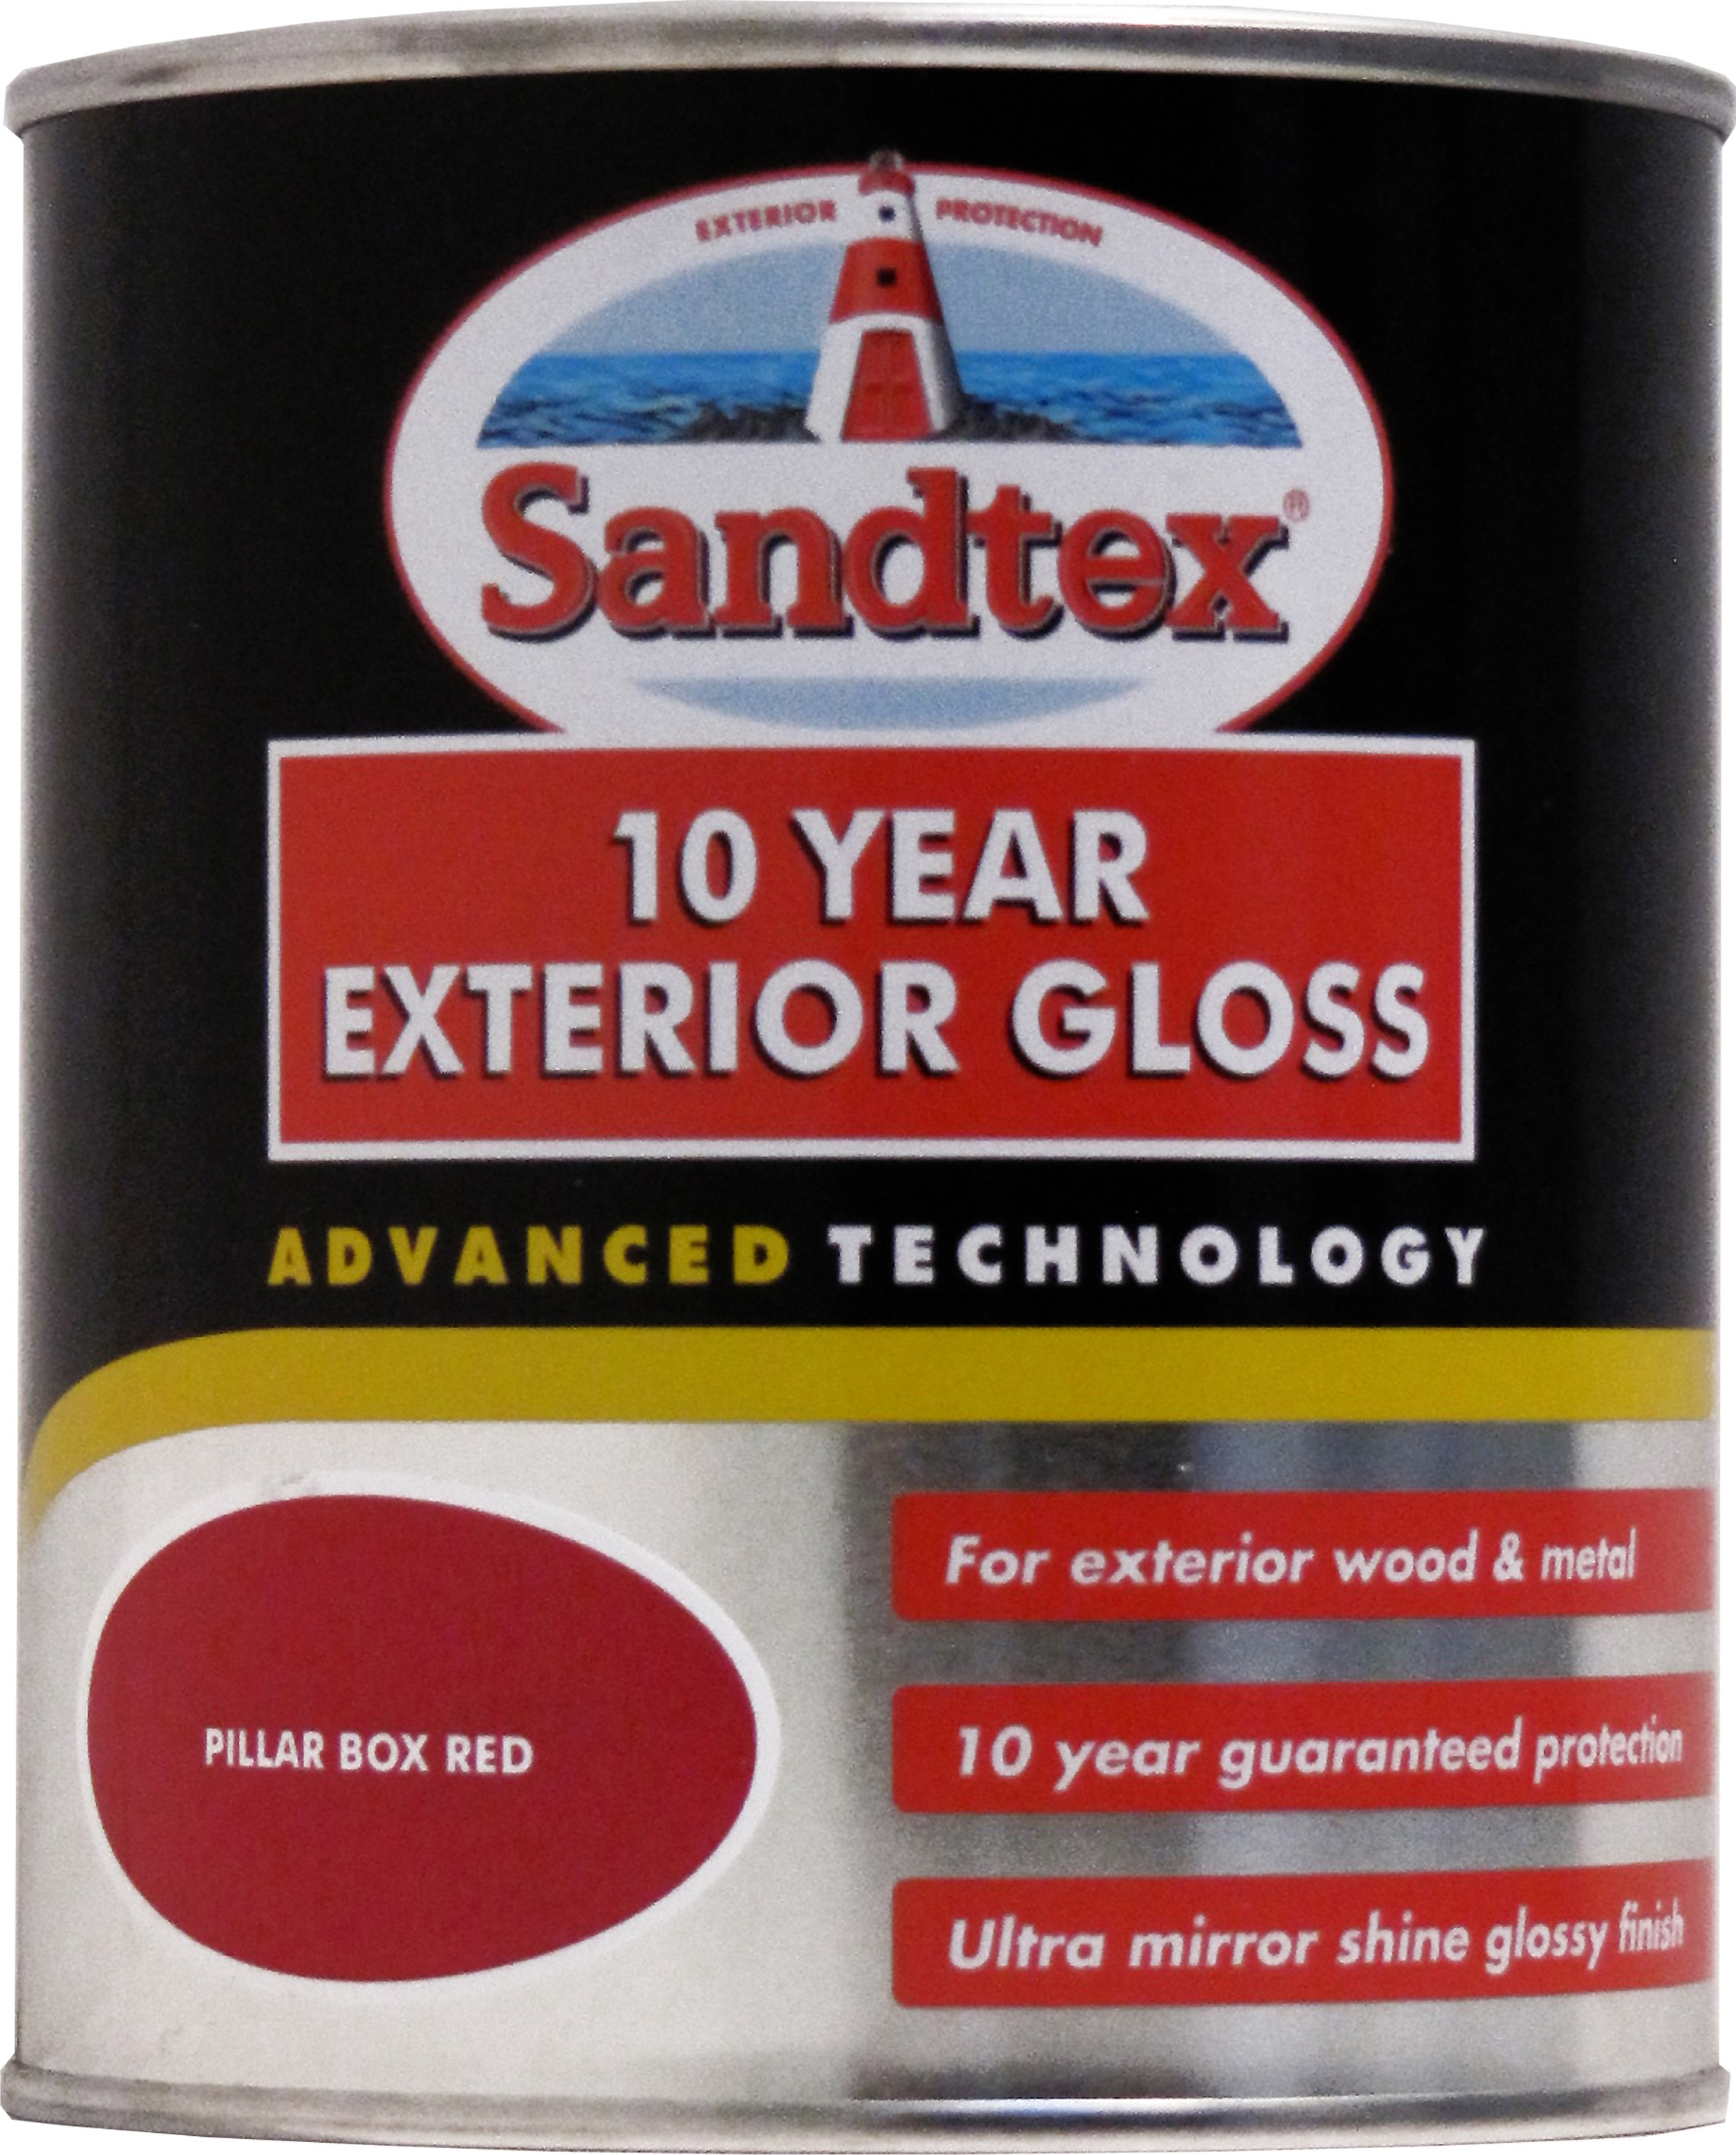 Sandtex 10 year exterior gloss colours paint 750ml gloss - Sandtex exterior paint ideas ...